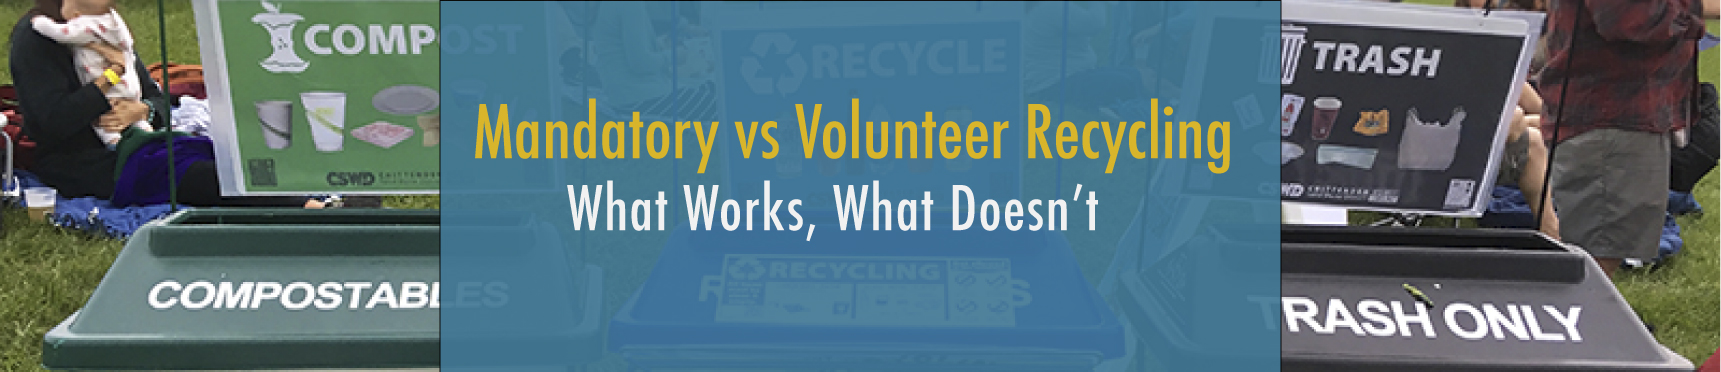 Mandatory vs Voluntary Recycling?: What Works, What Doesn't